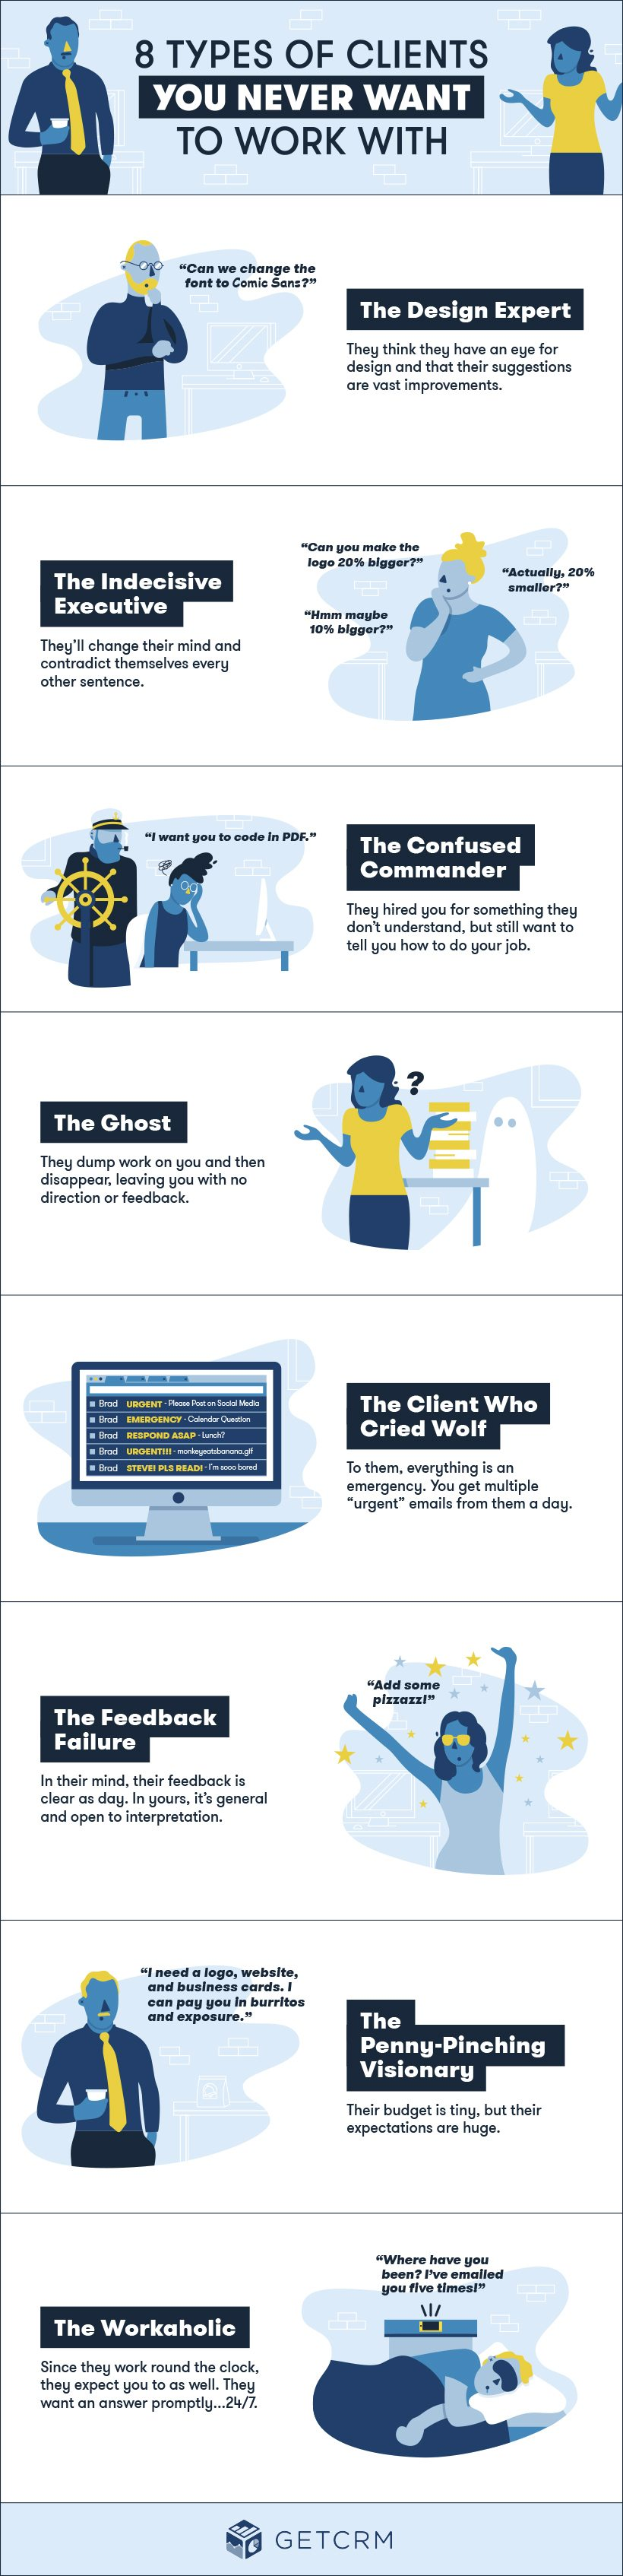 8-Types-of-Client-Web-Designers-Hate-Are-You-One-of-Them-1